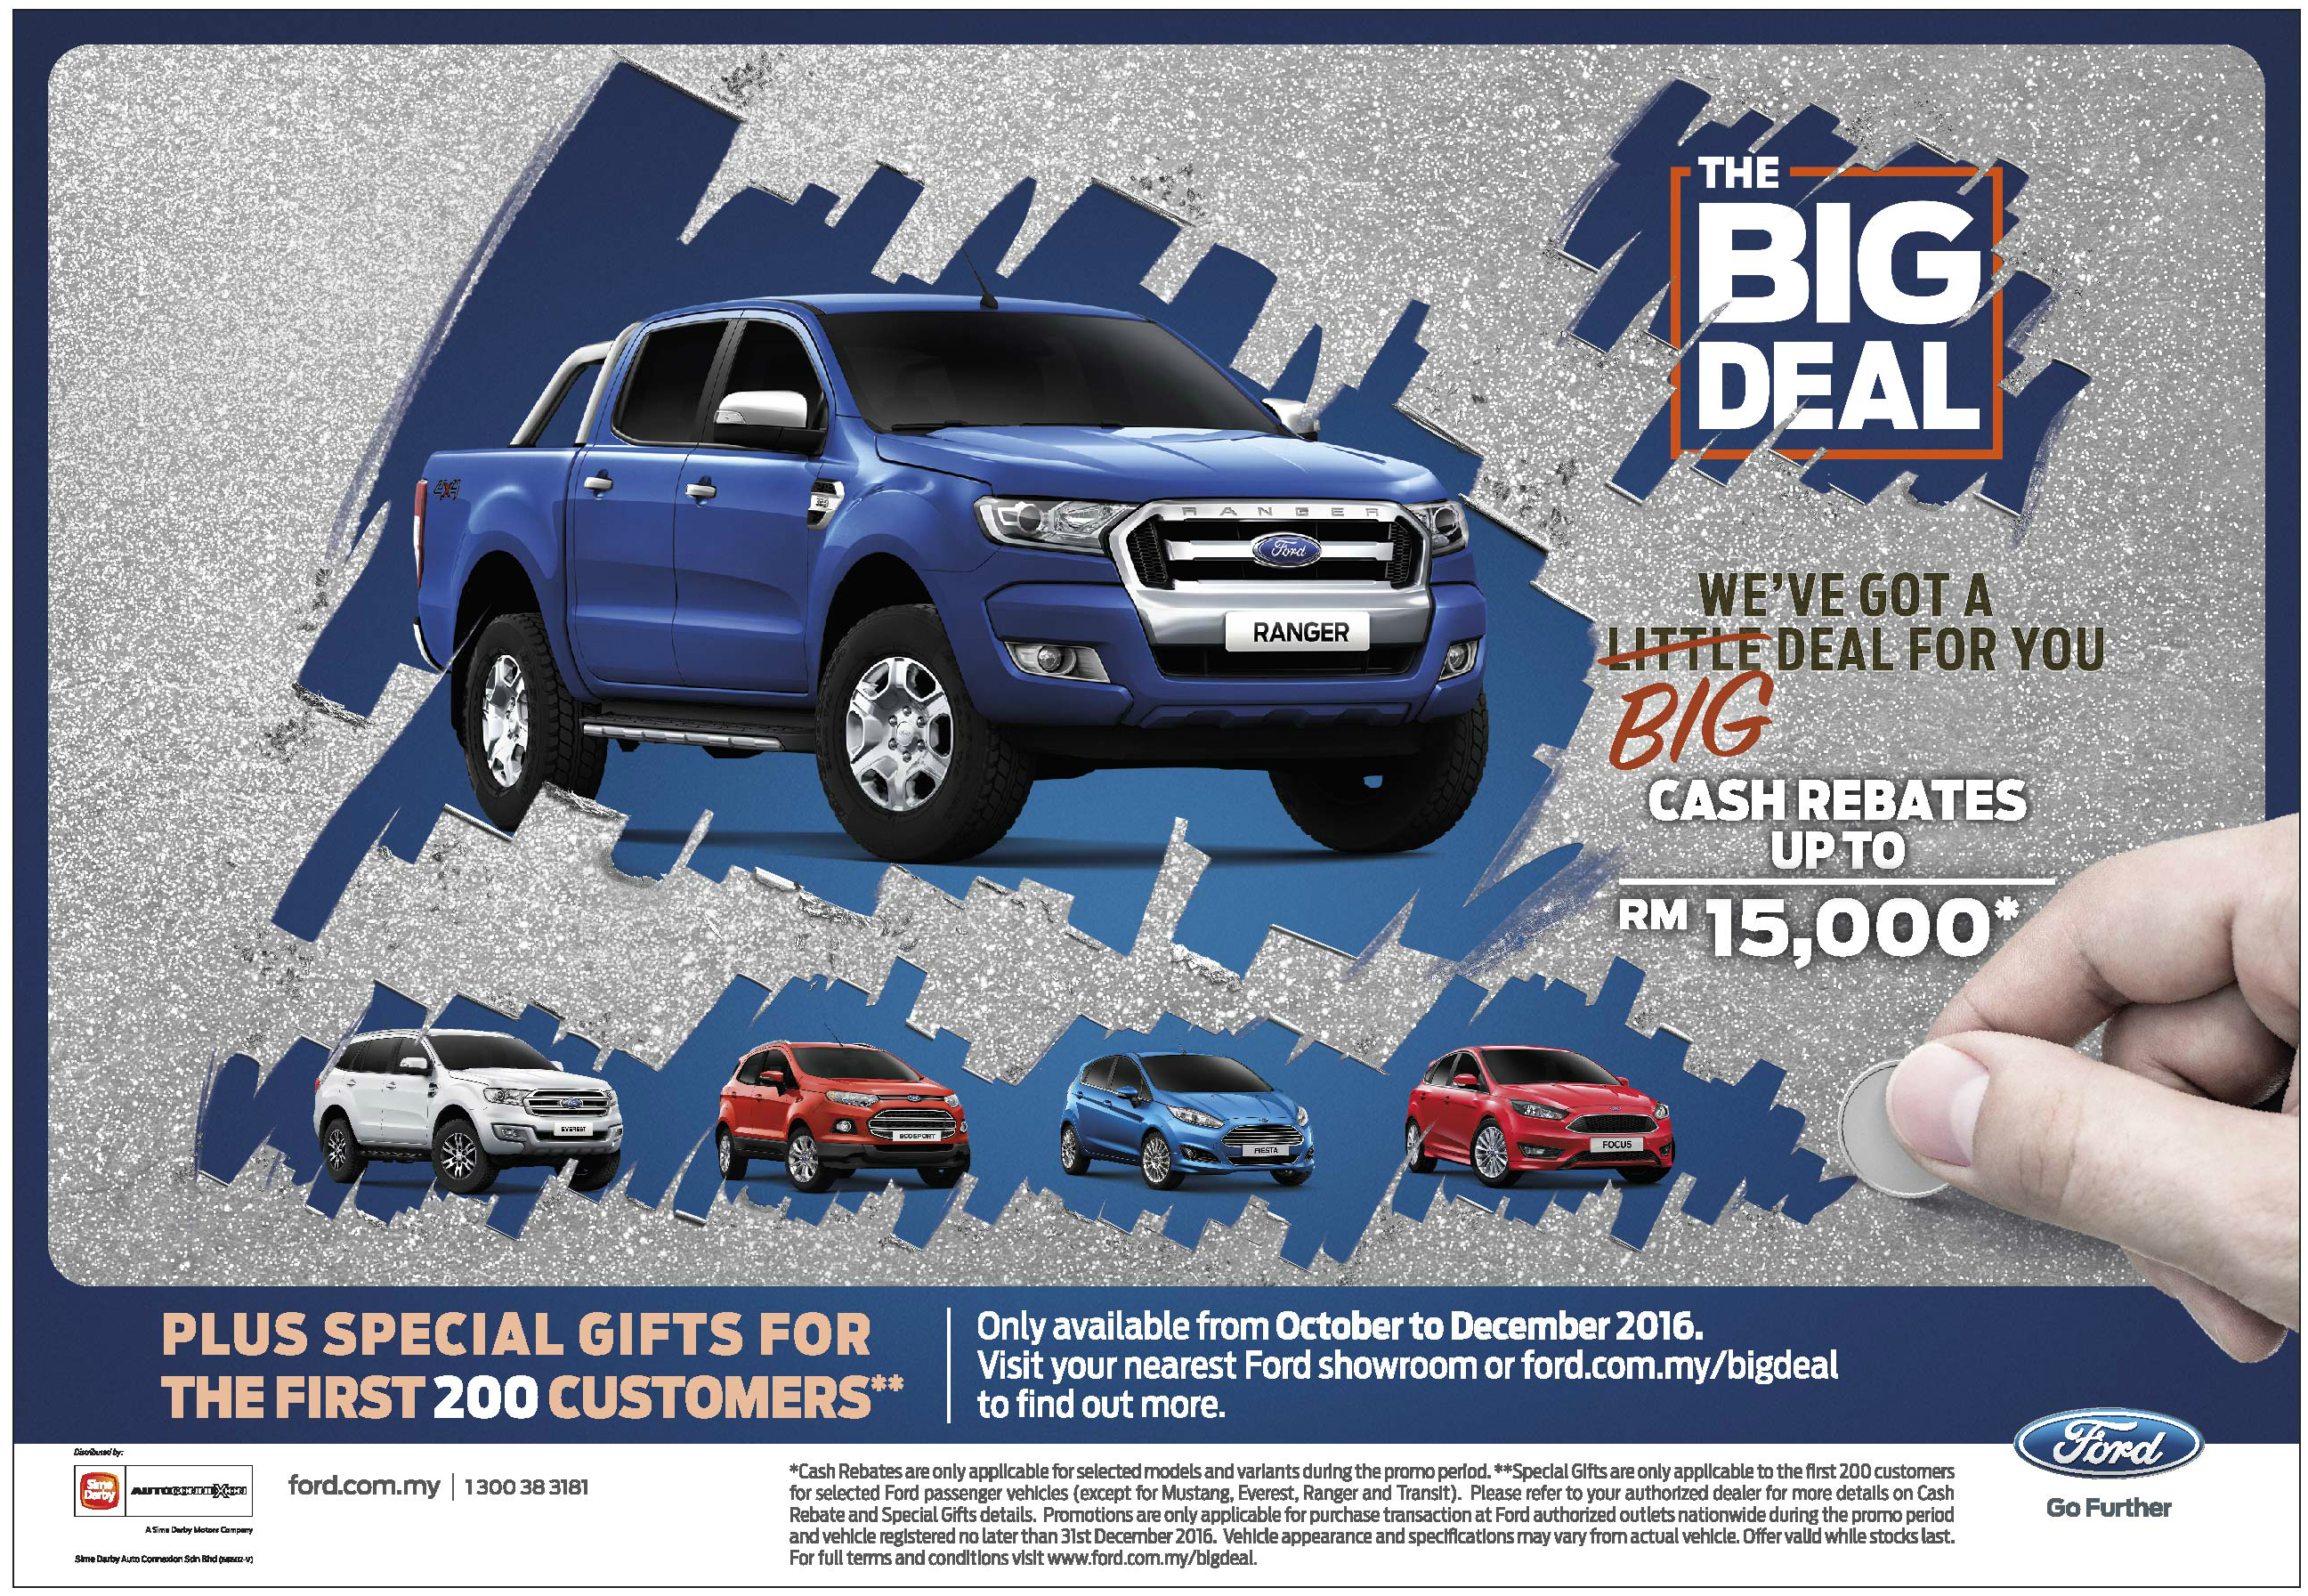 Ad ford big deal promo cash rebates up to rm15k image 558666